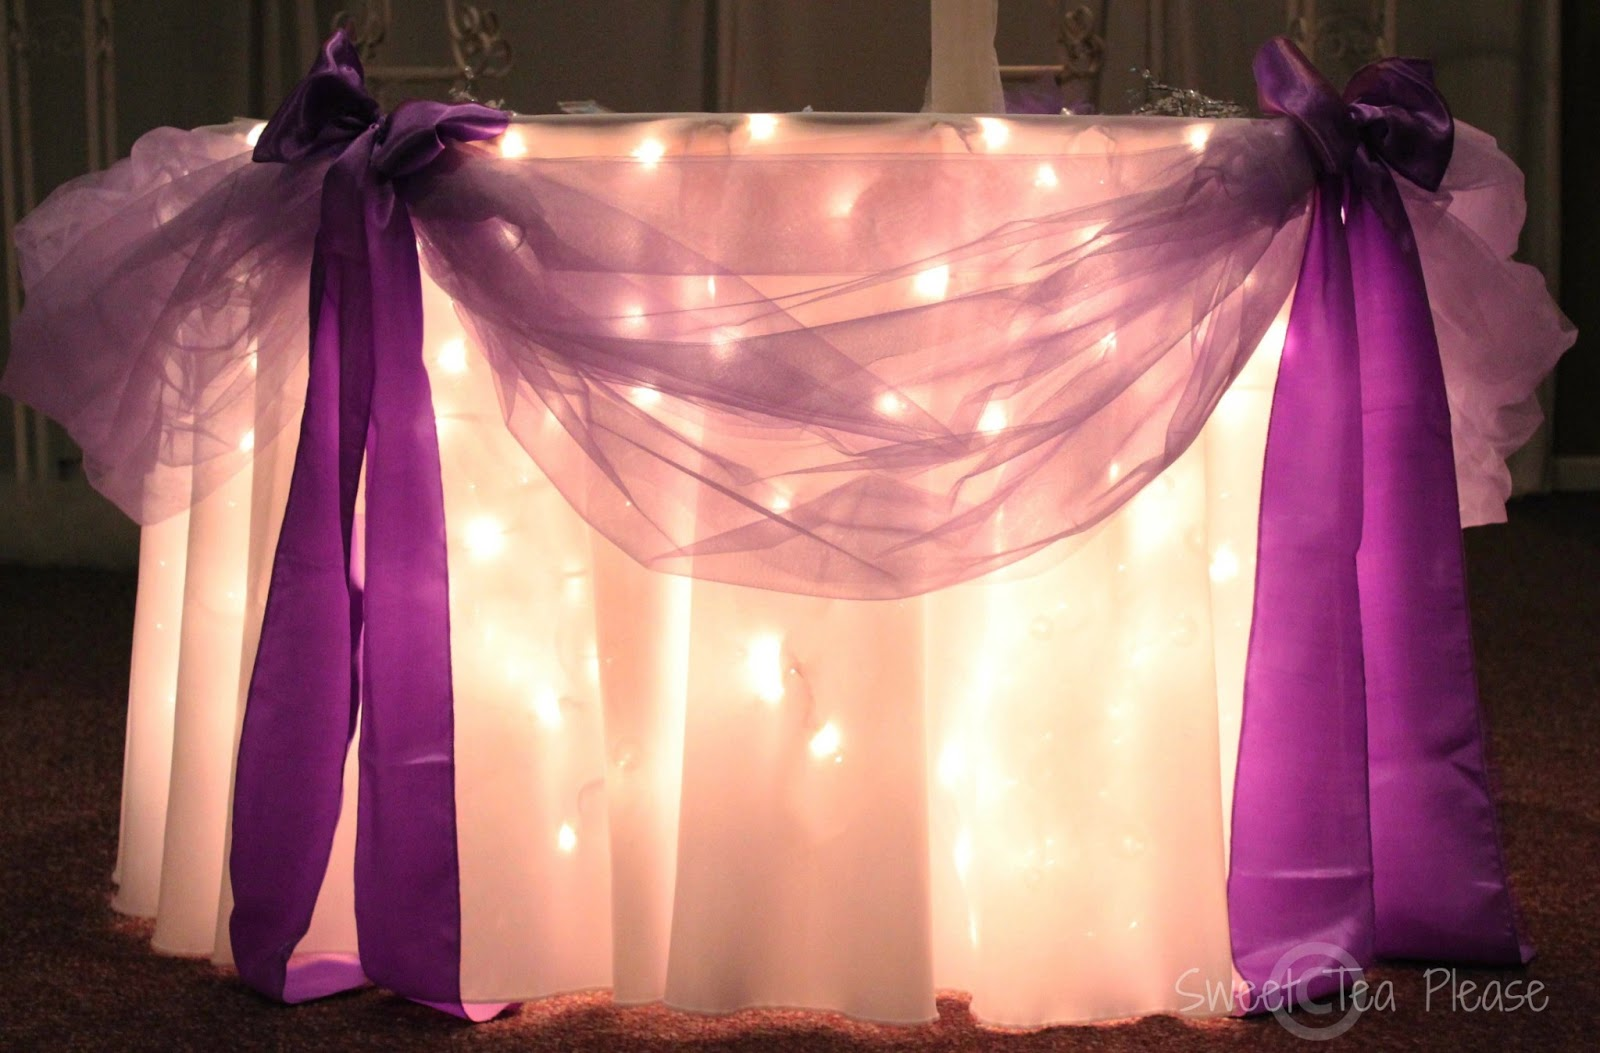 Merveilleux Andrea Howard Blog: Decorating A Cake Table With Lights And Tulle   A  Tutorial